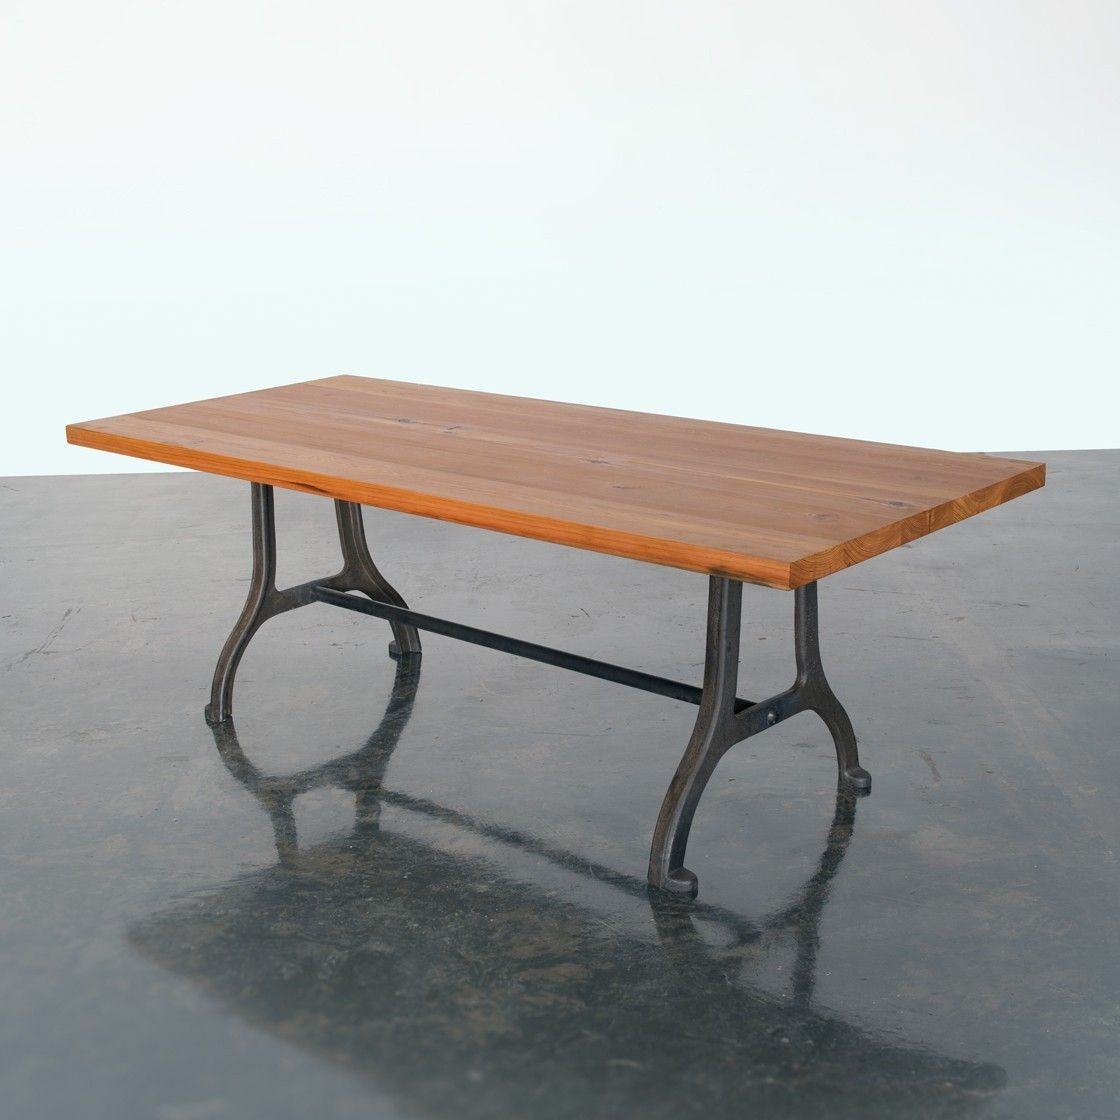 Manchester Base Table Trestle Table Dining Table [ 1120 x 1120 Pixel ]